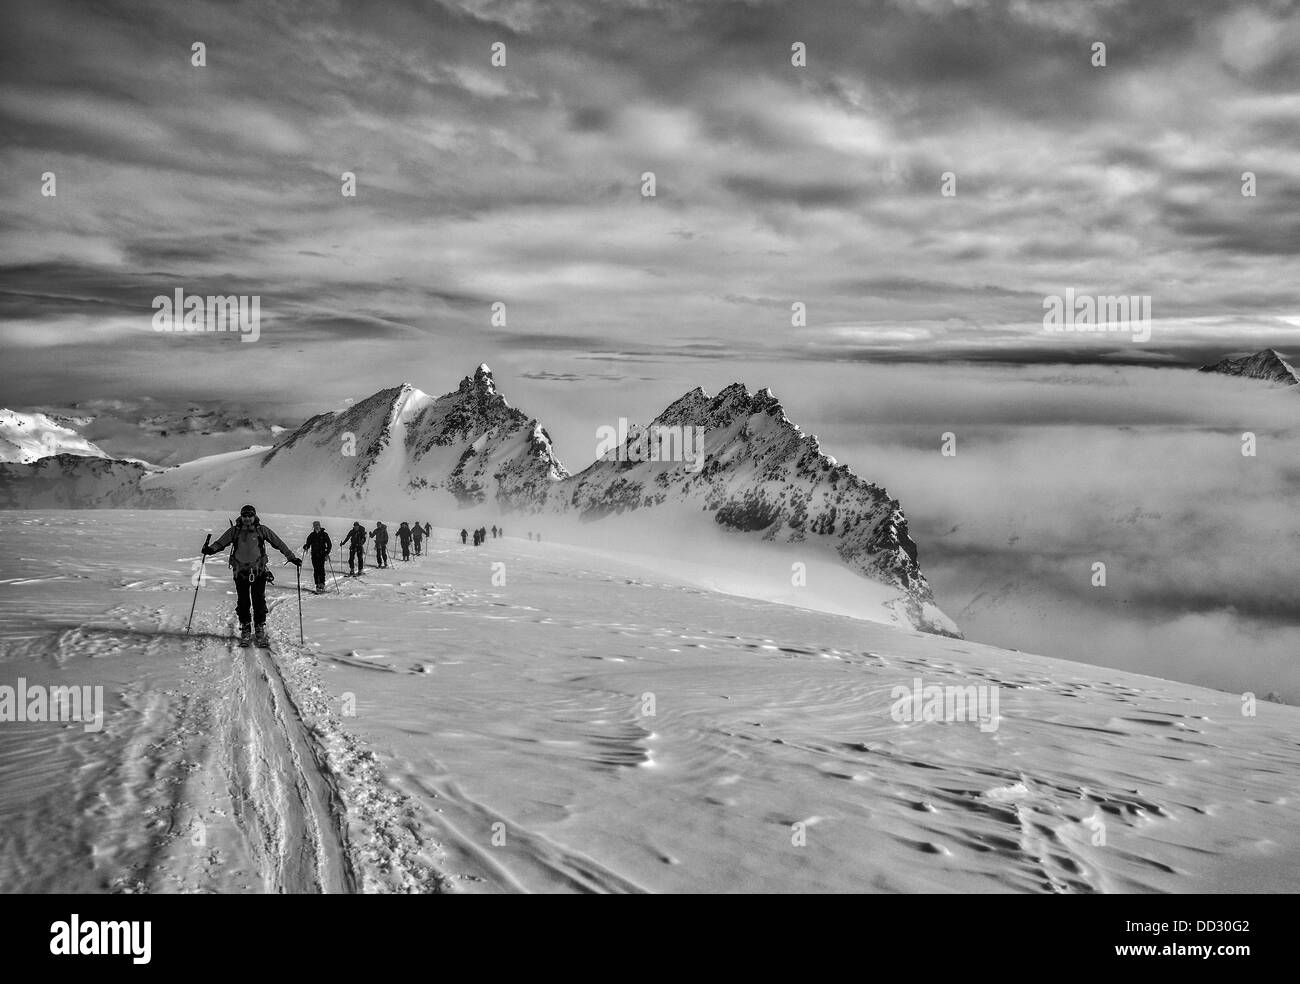 Skiers on the Haute Route in Switzerland Stock Photo